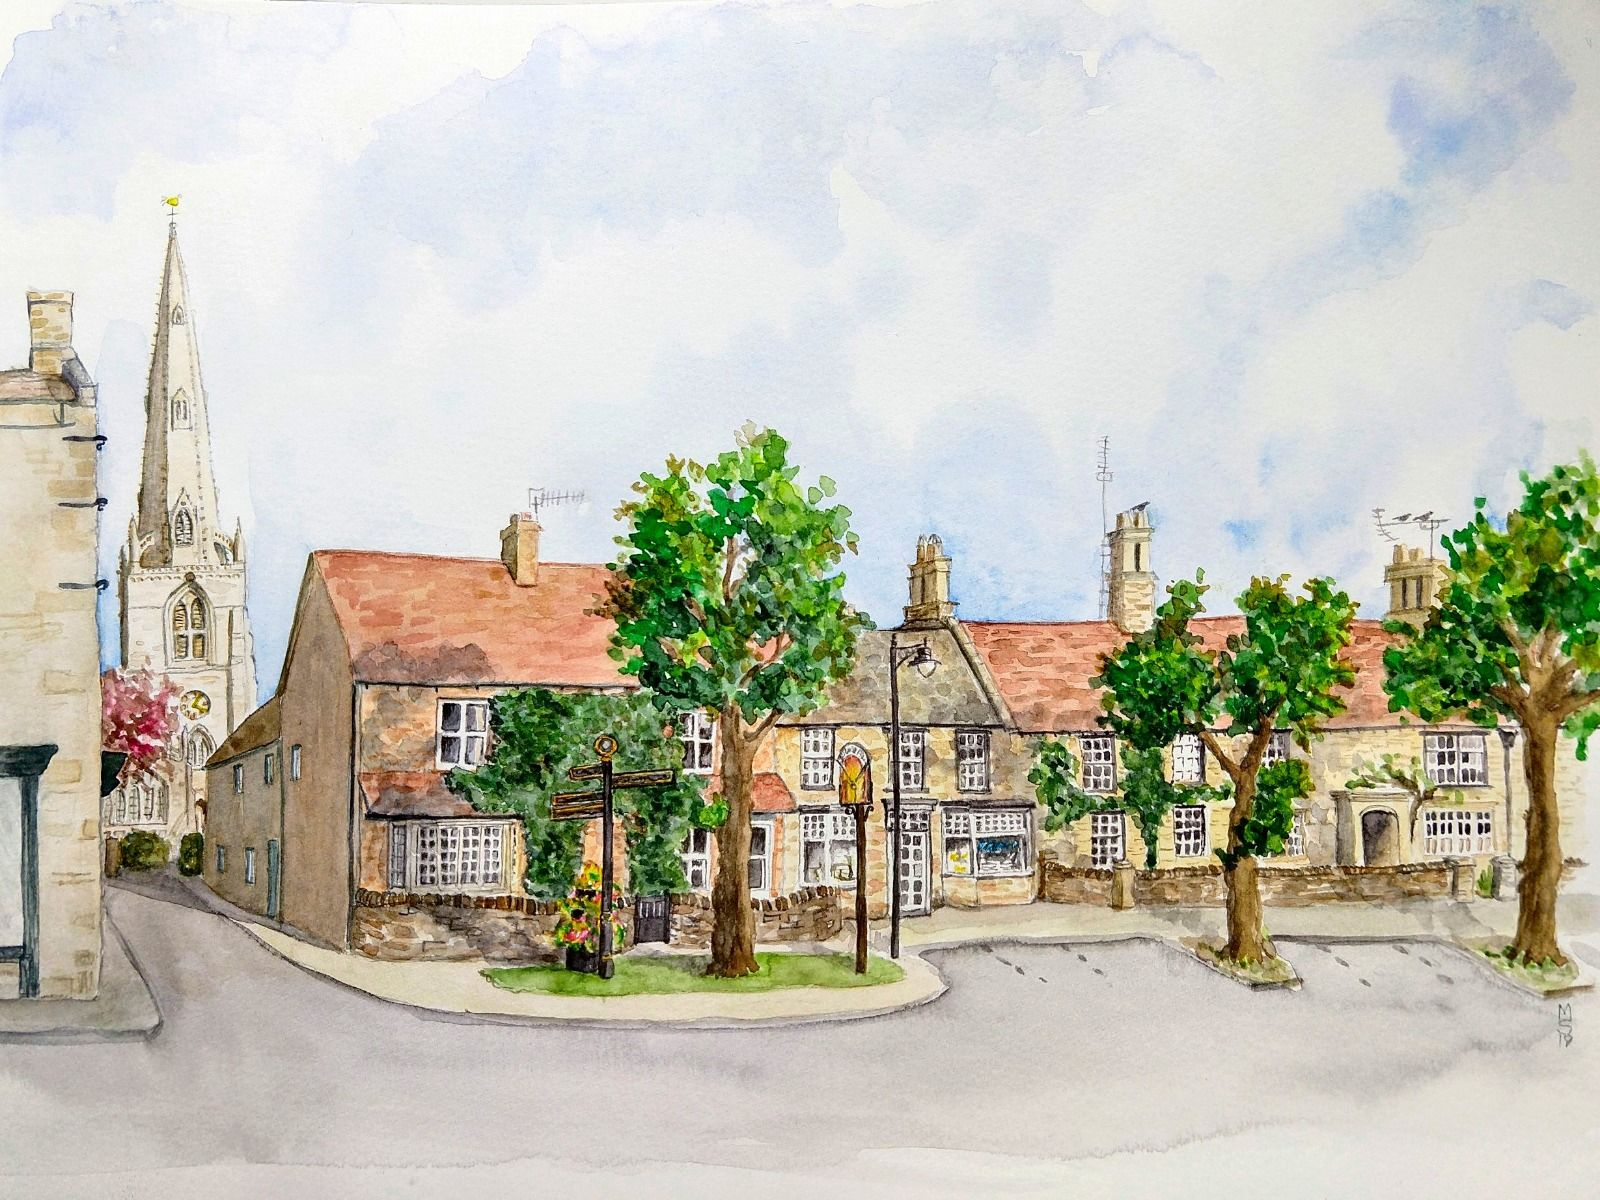 Higham Ferrers Market Square Chicele St.Marys church greeting card